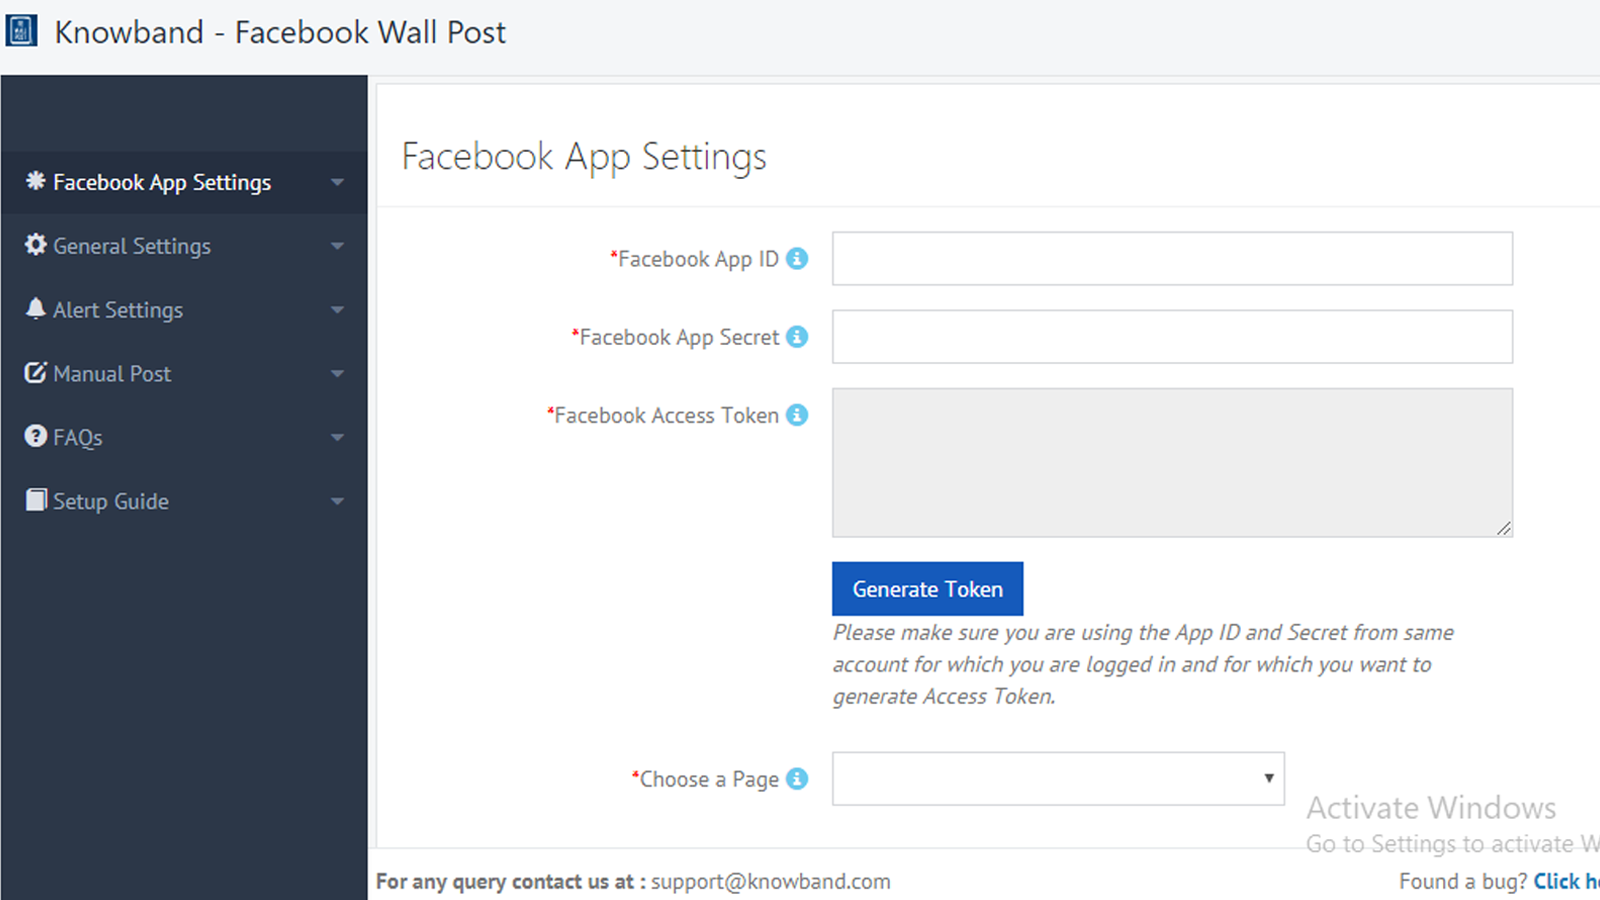 Facebook App Setting Page